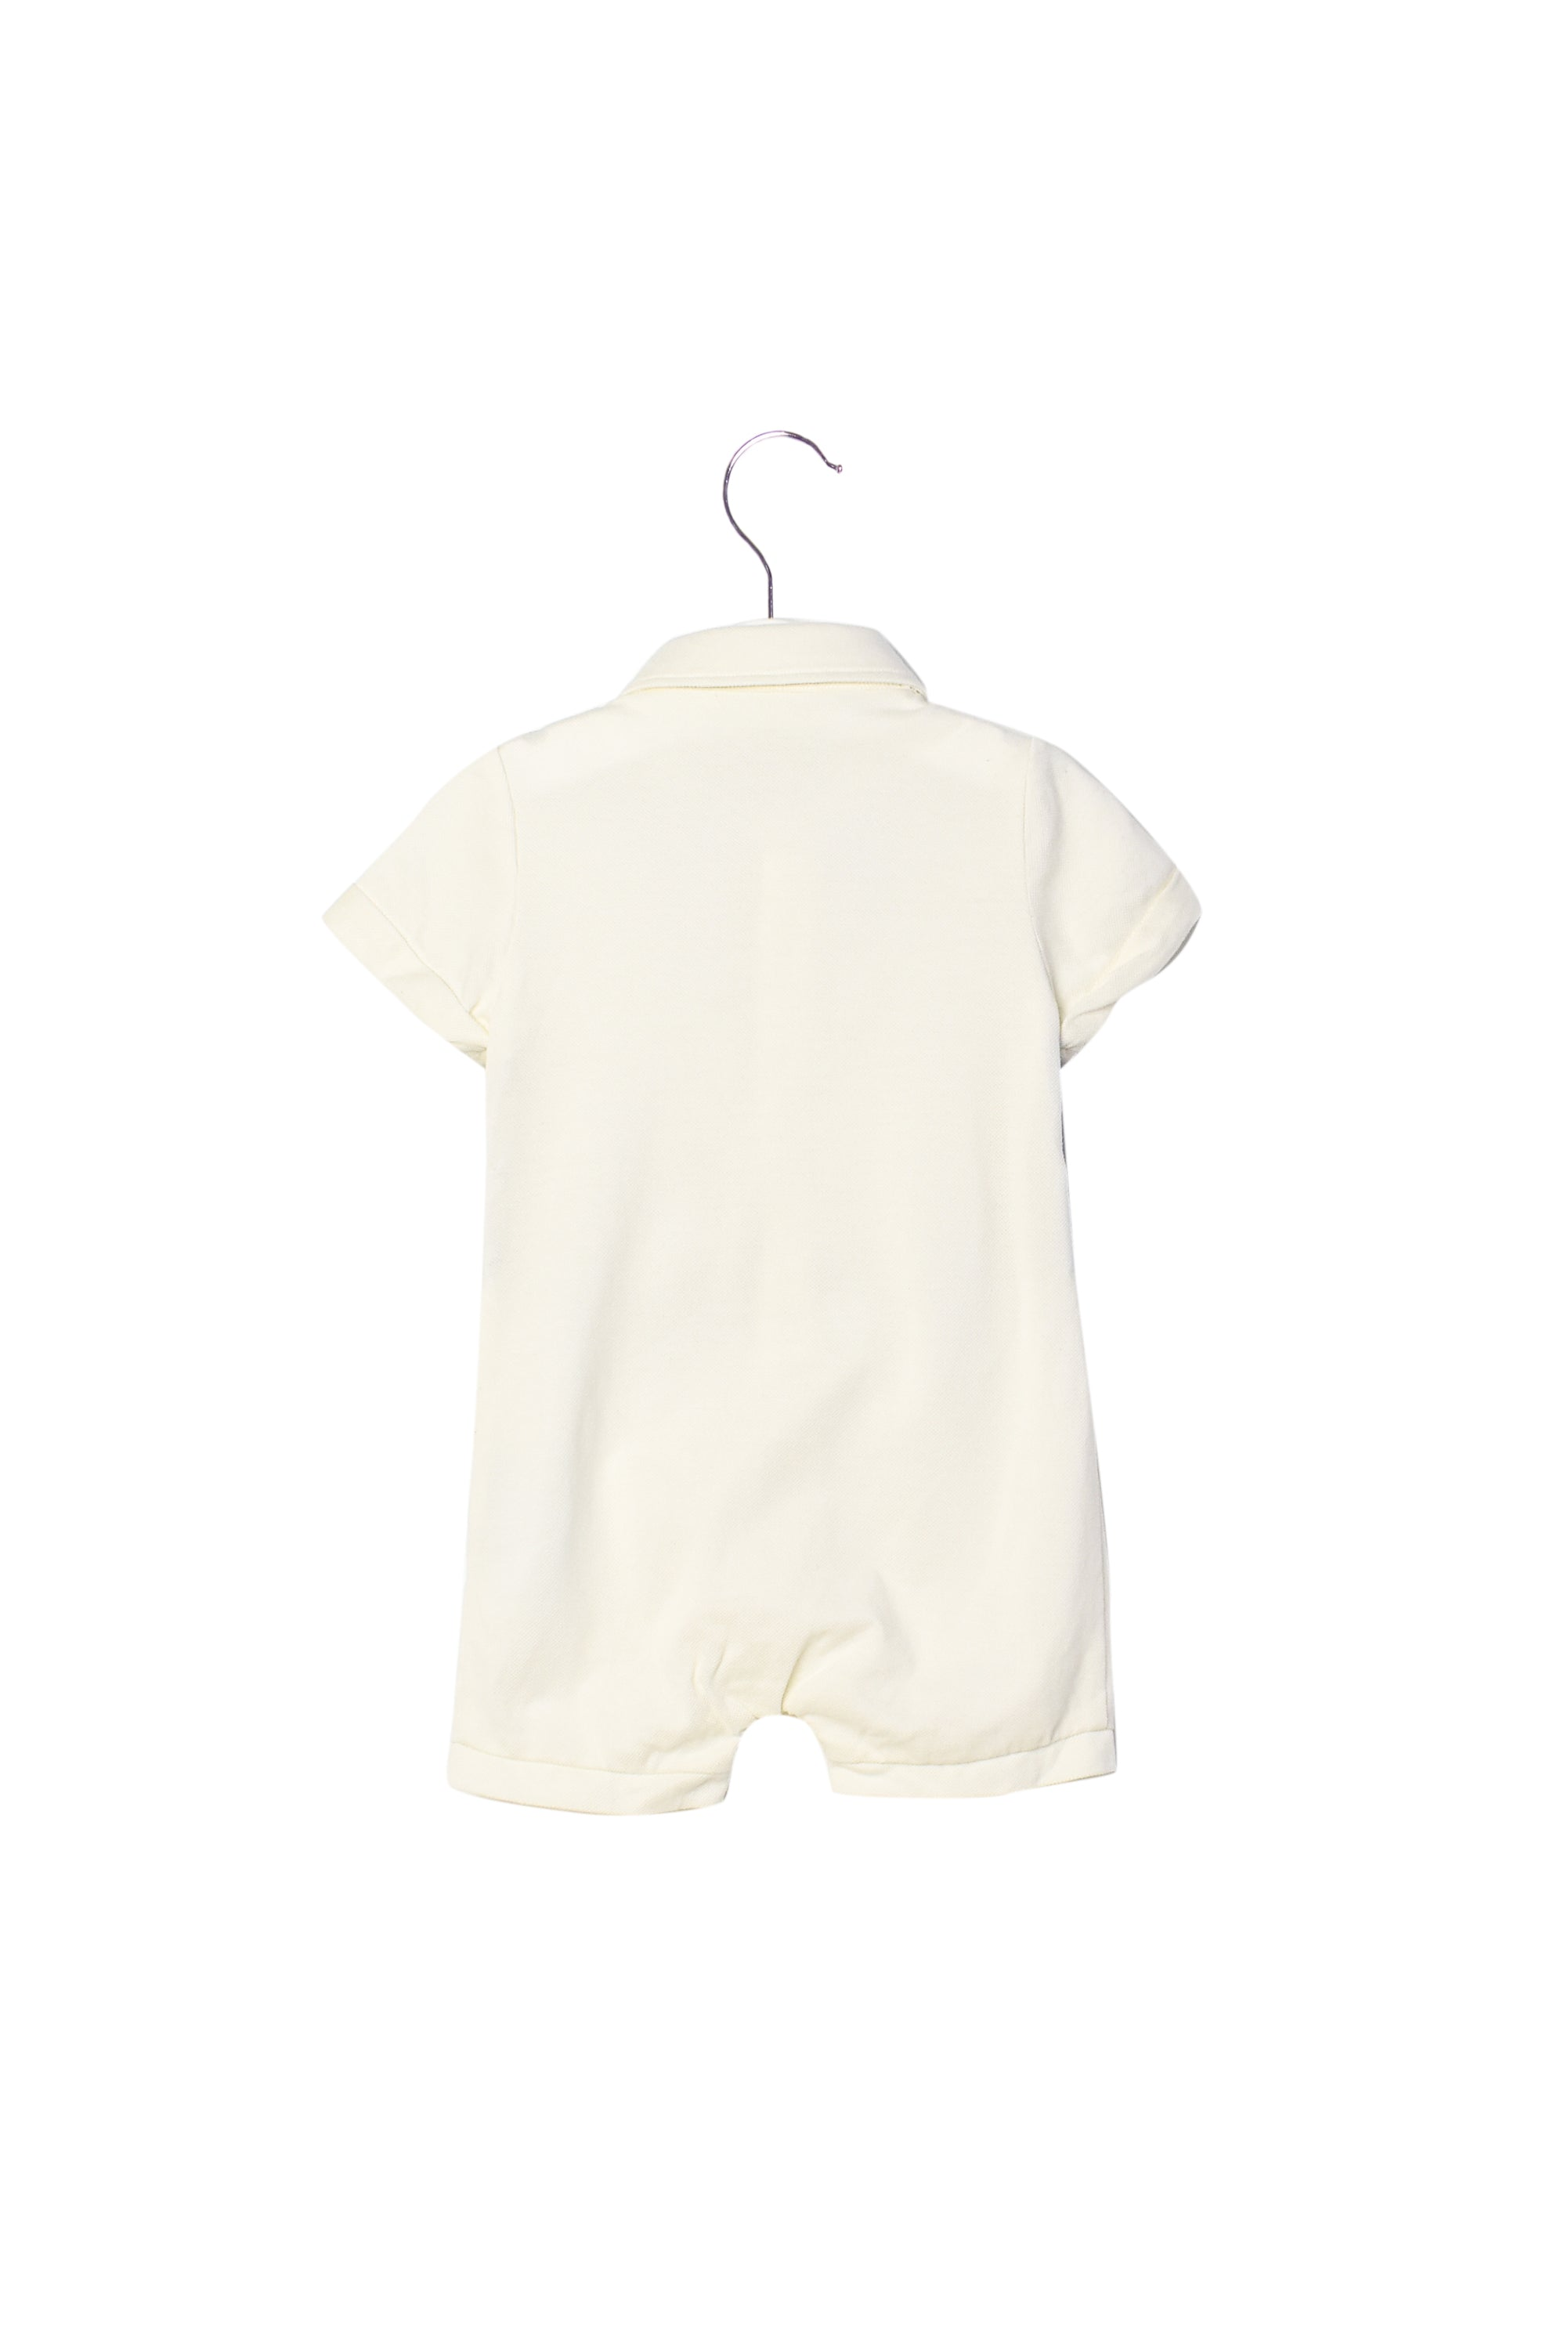 10007726 Nicholas & Bears Baby~ Bodysuit 6M at Retykle